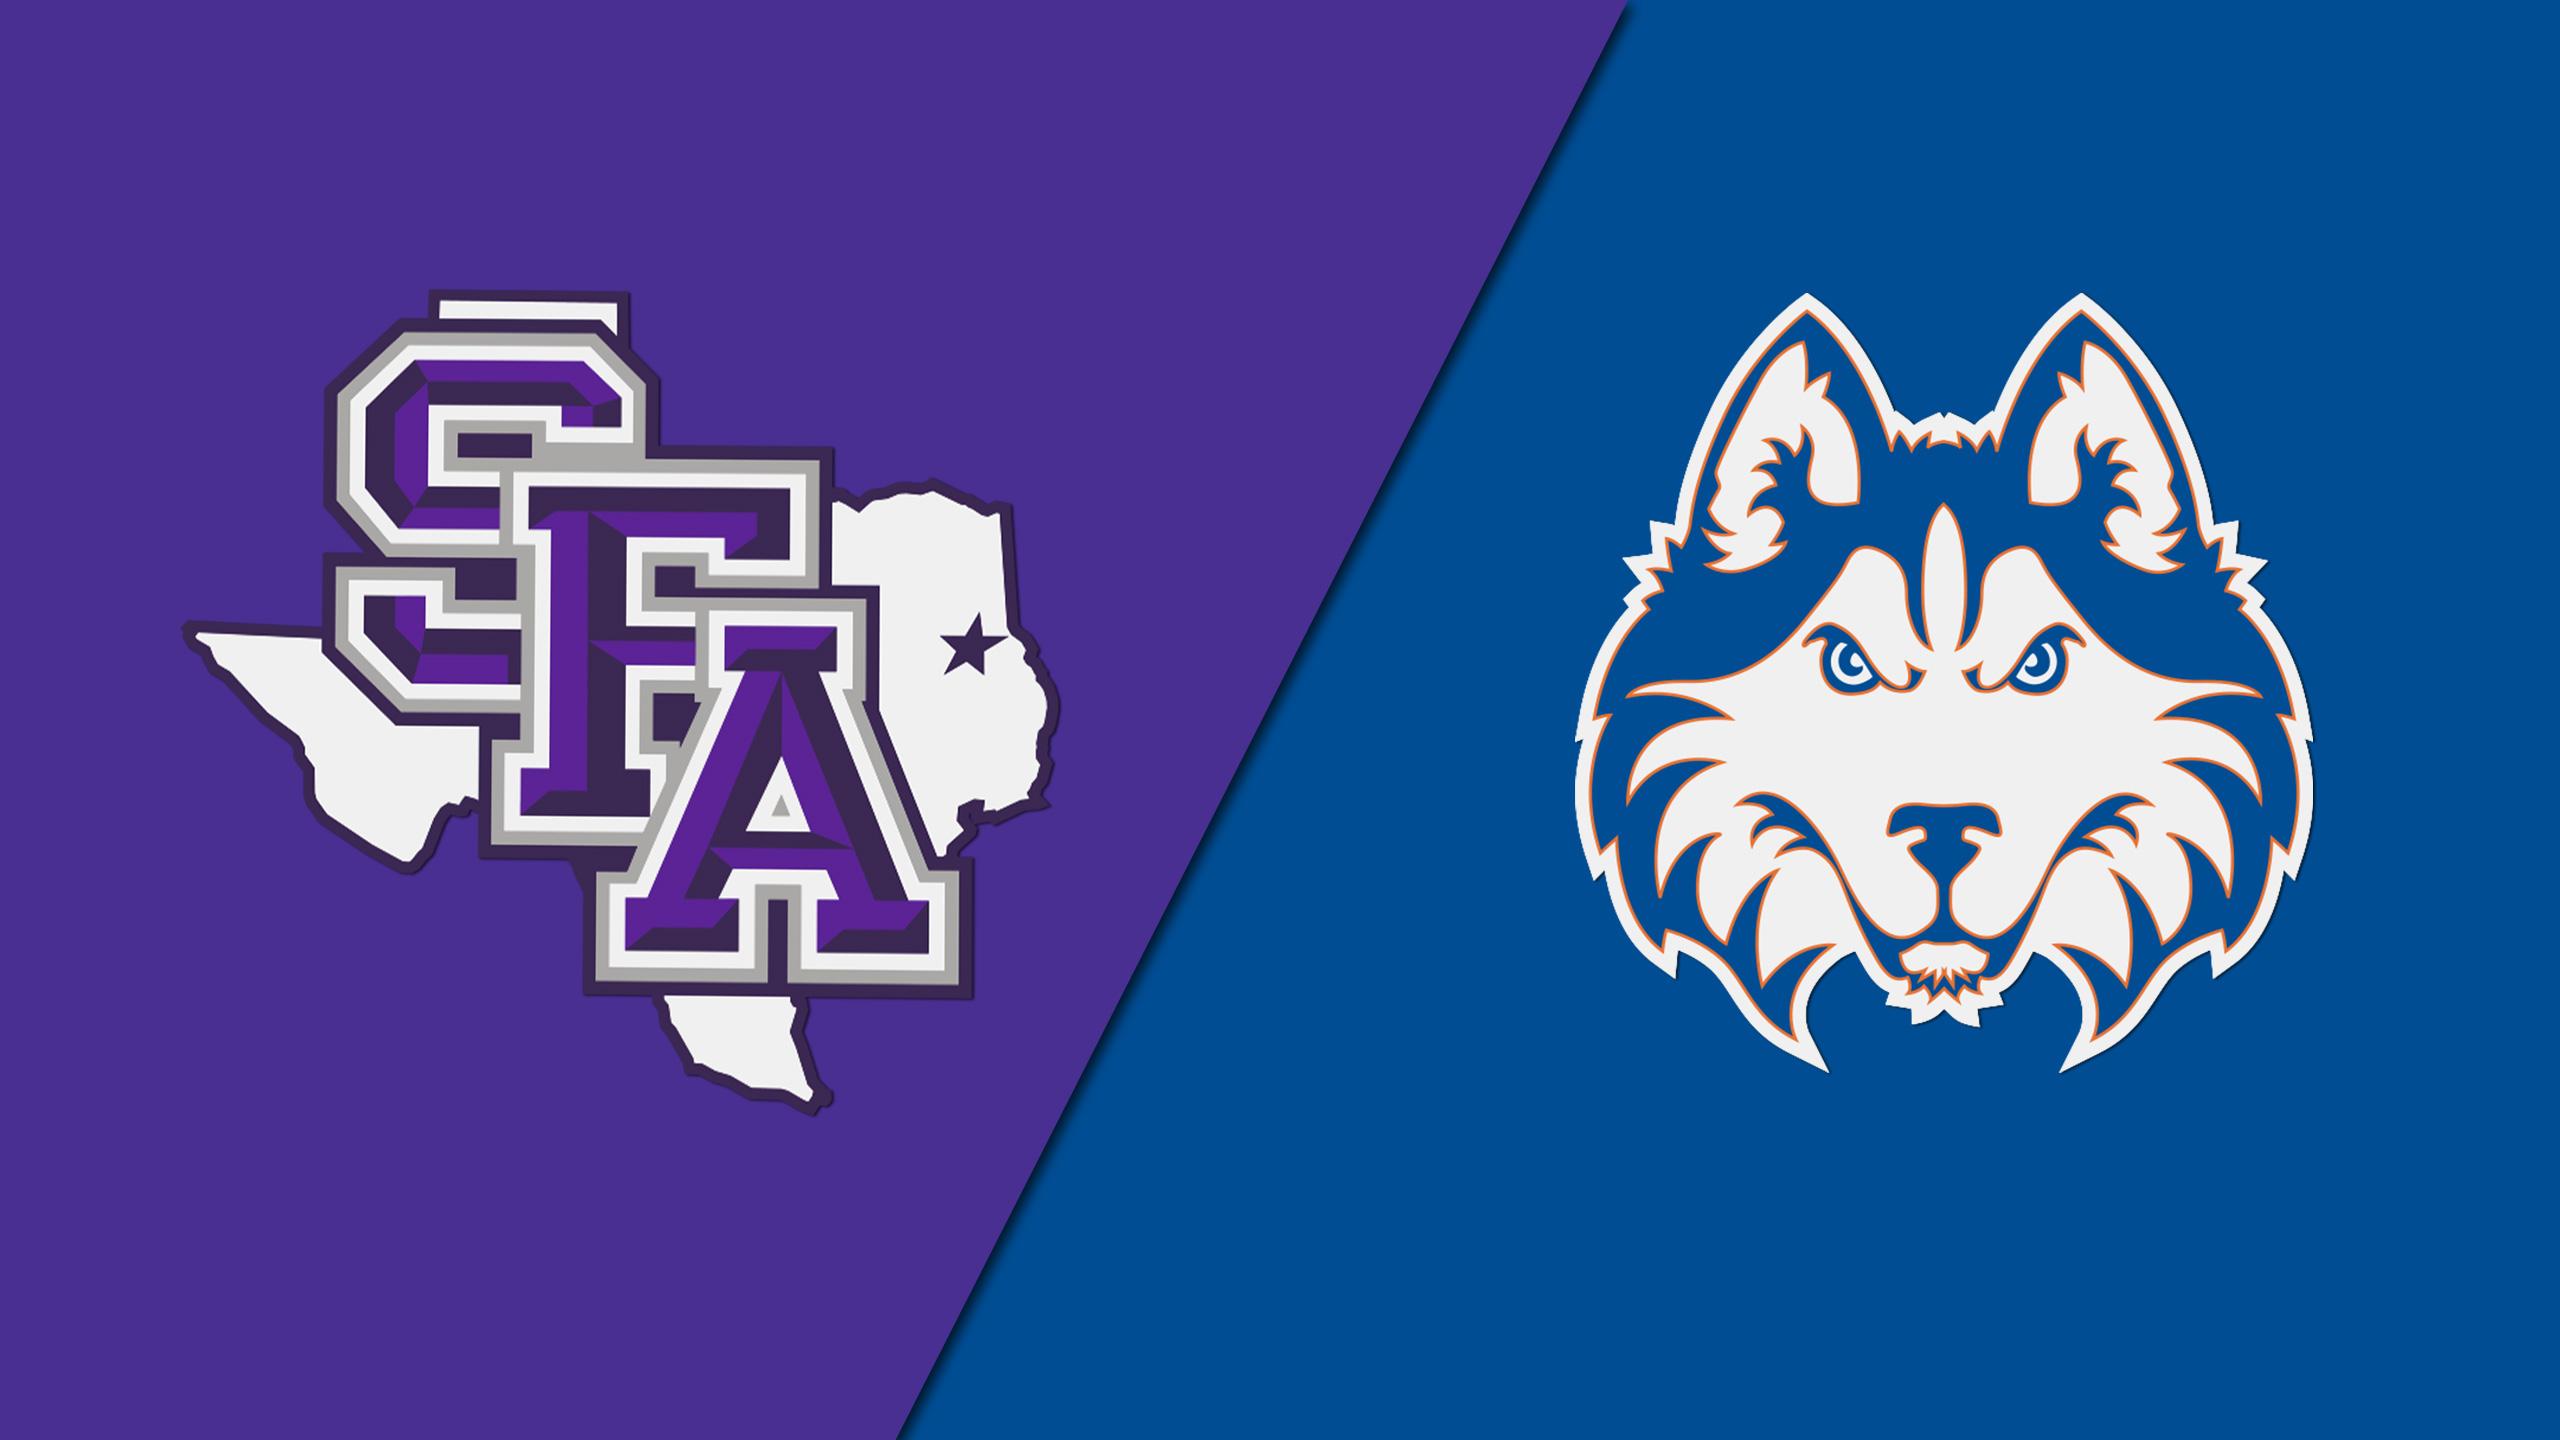 Stephen F. Austin vs. Houston Baptist (Football)